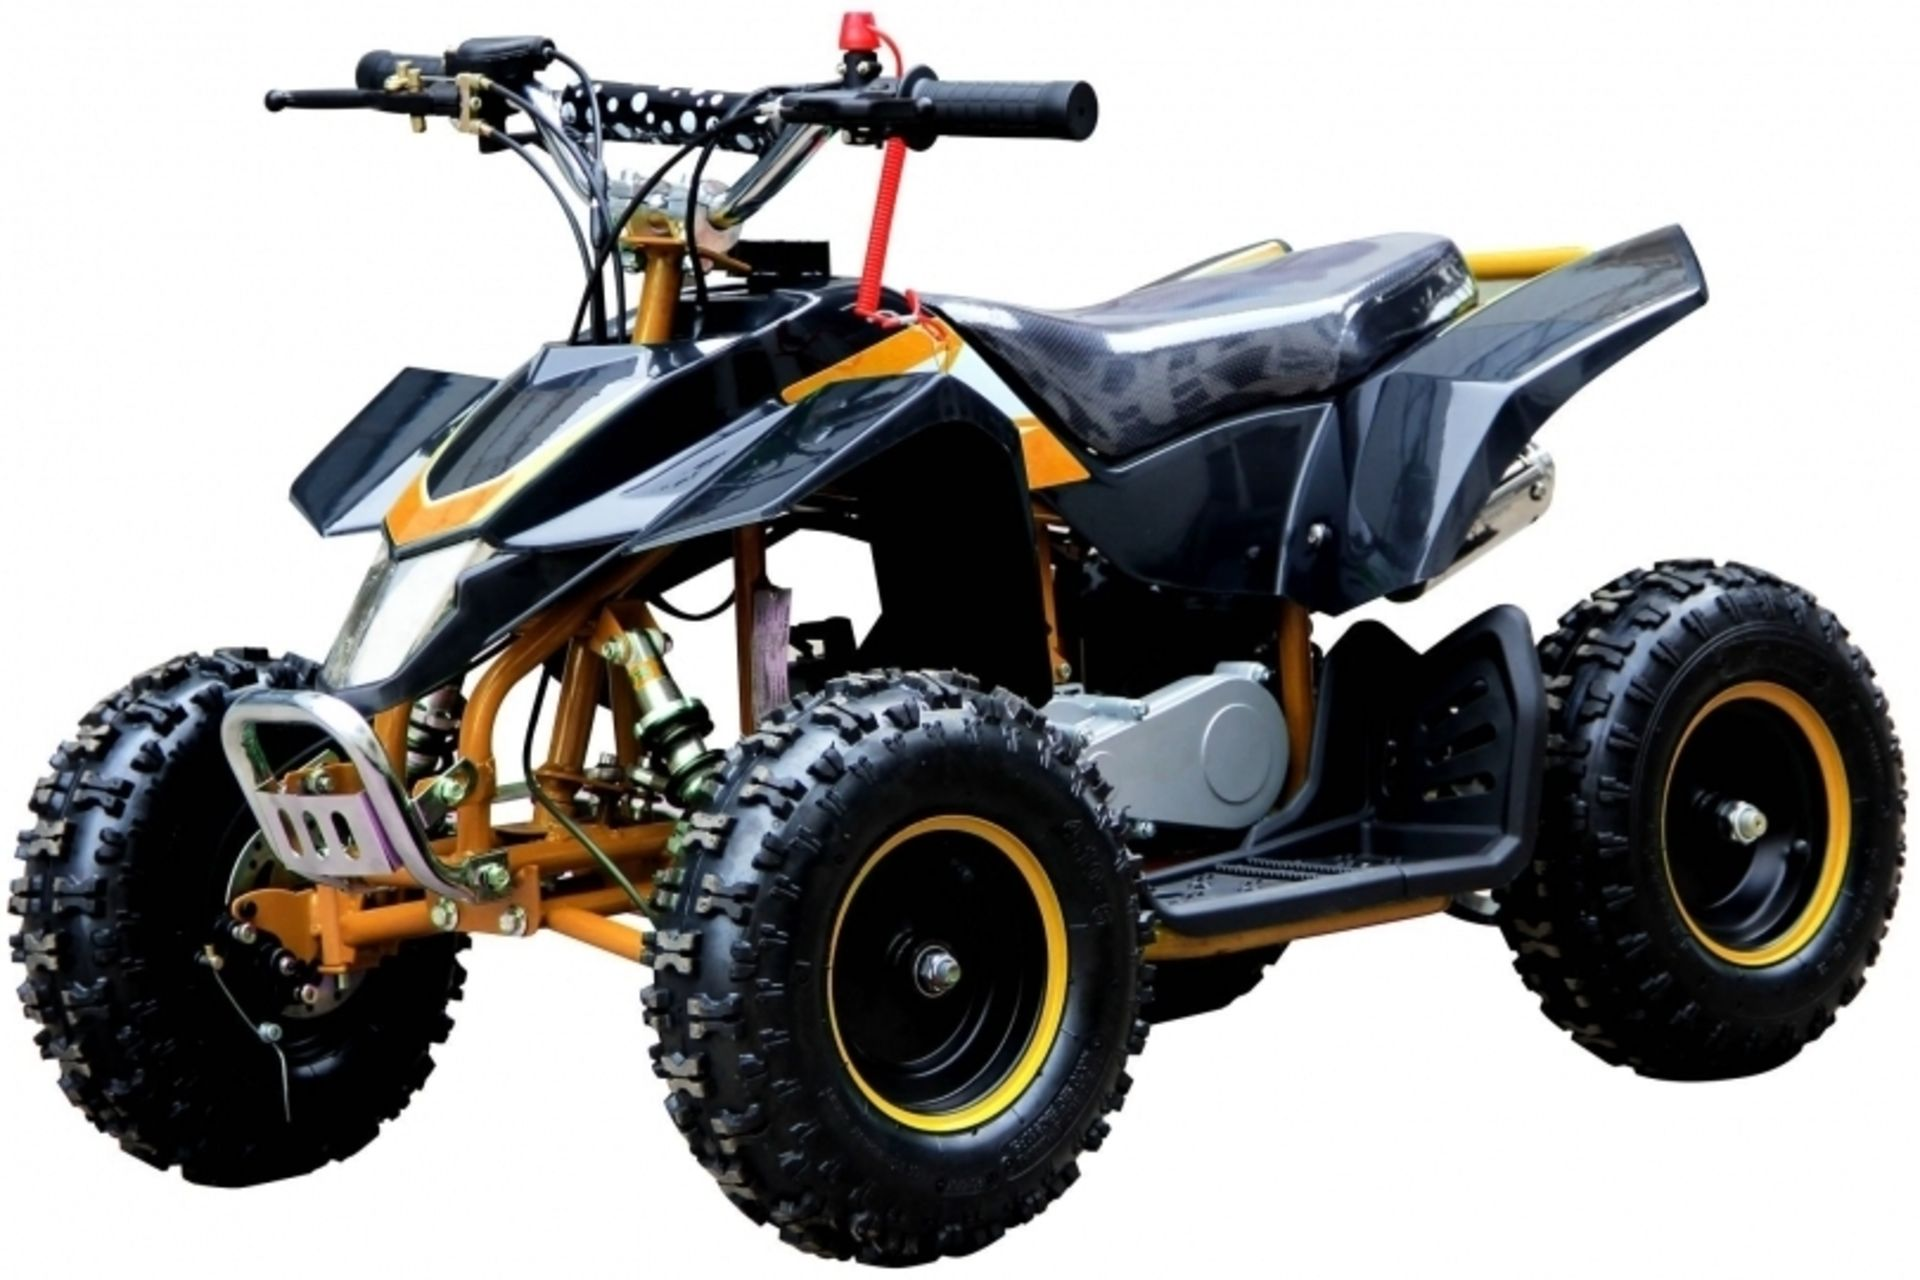 Lot 31885 - V Brand New 50cc Zikai Mini Quad - Colours May Vary - Available Approx 5 Working Days After Payment